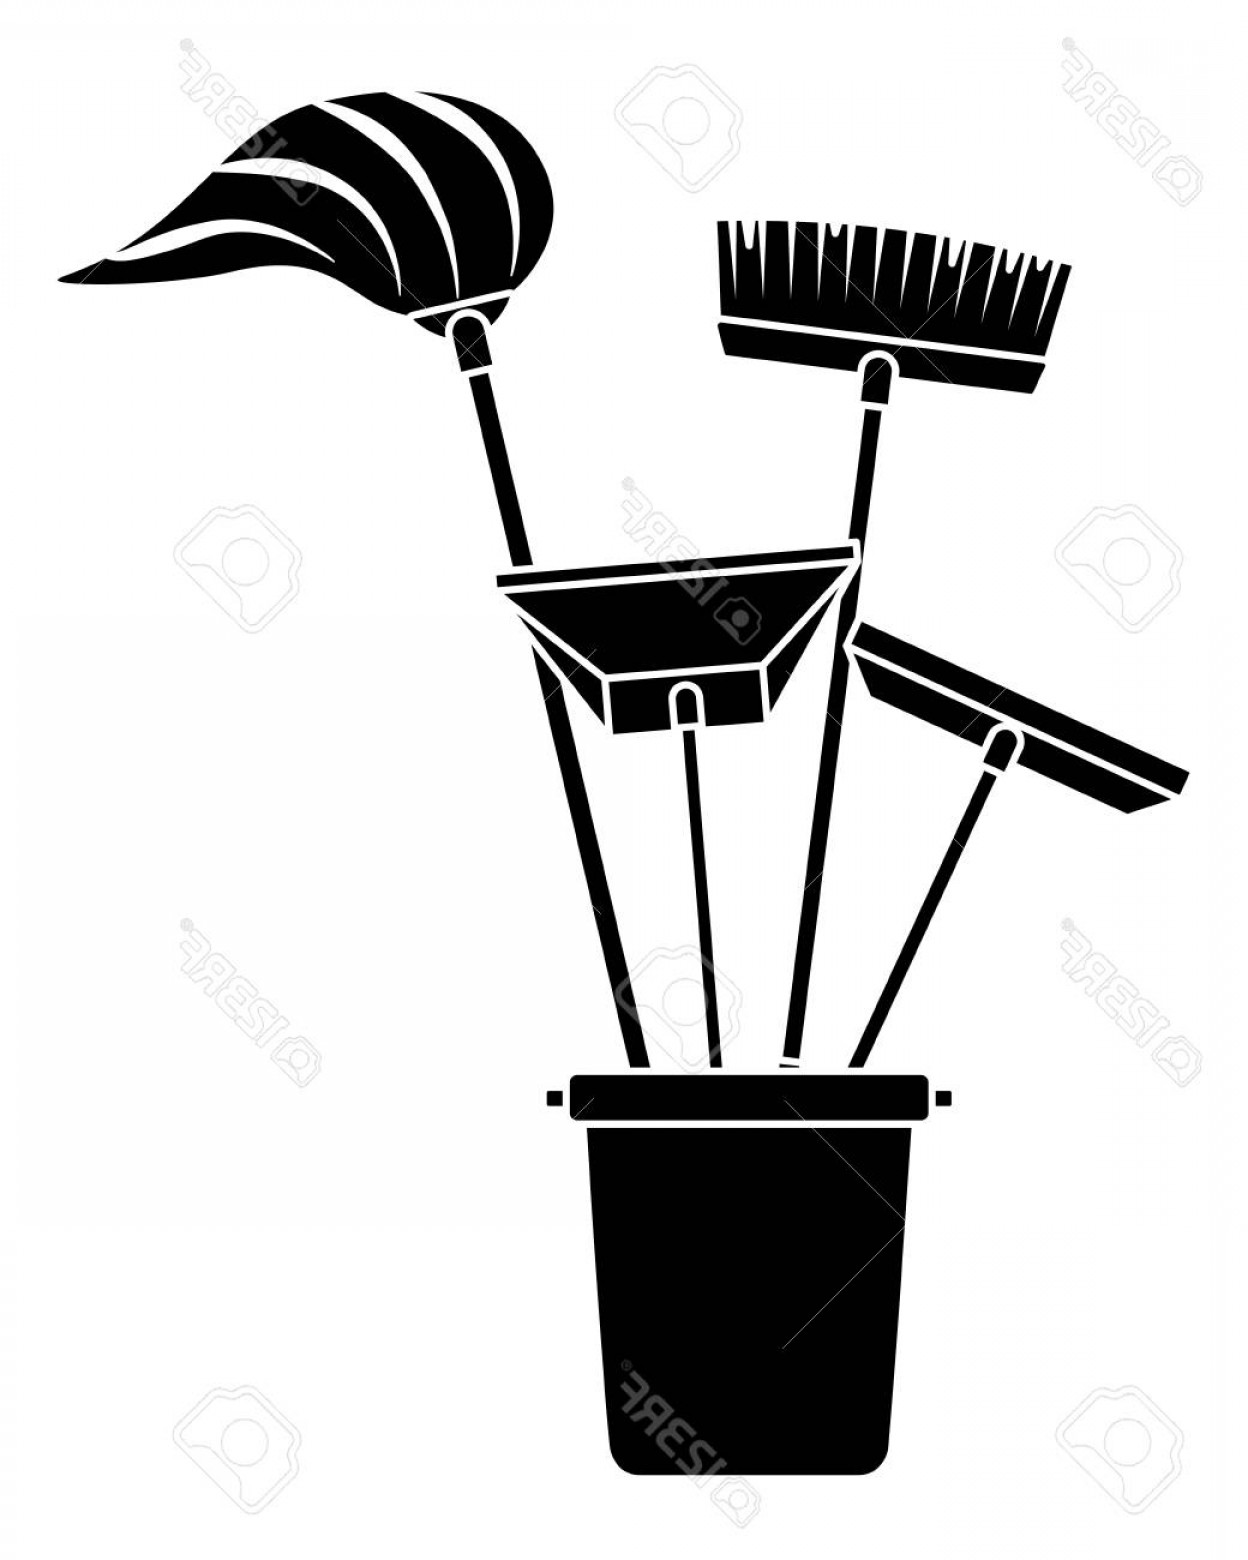 Cleaning Vector Janitorail: Photostock Vector Various Cleaning Objects In A Plastic Bucket For Janitorial Cleaning Tools Vector Illustration Black